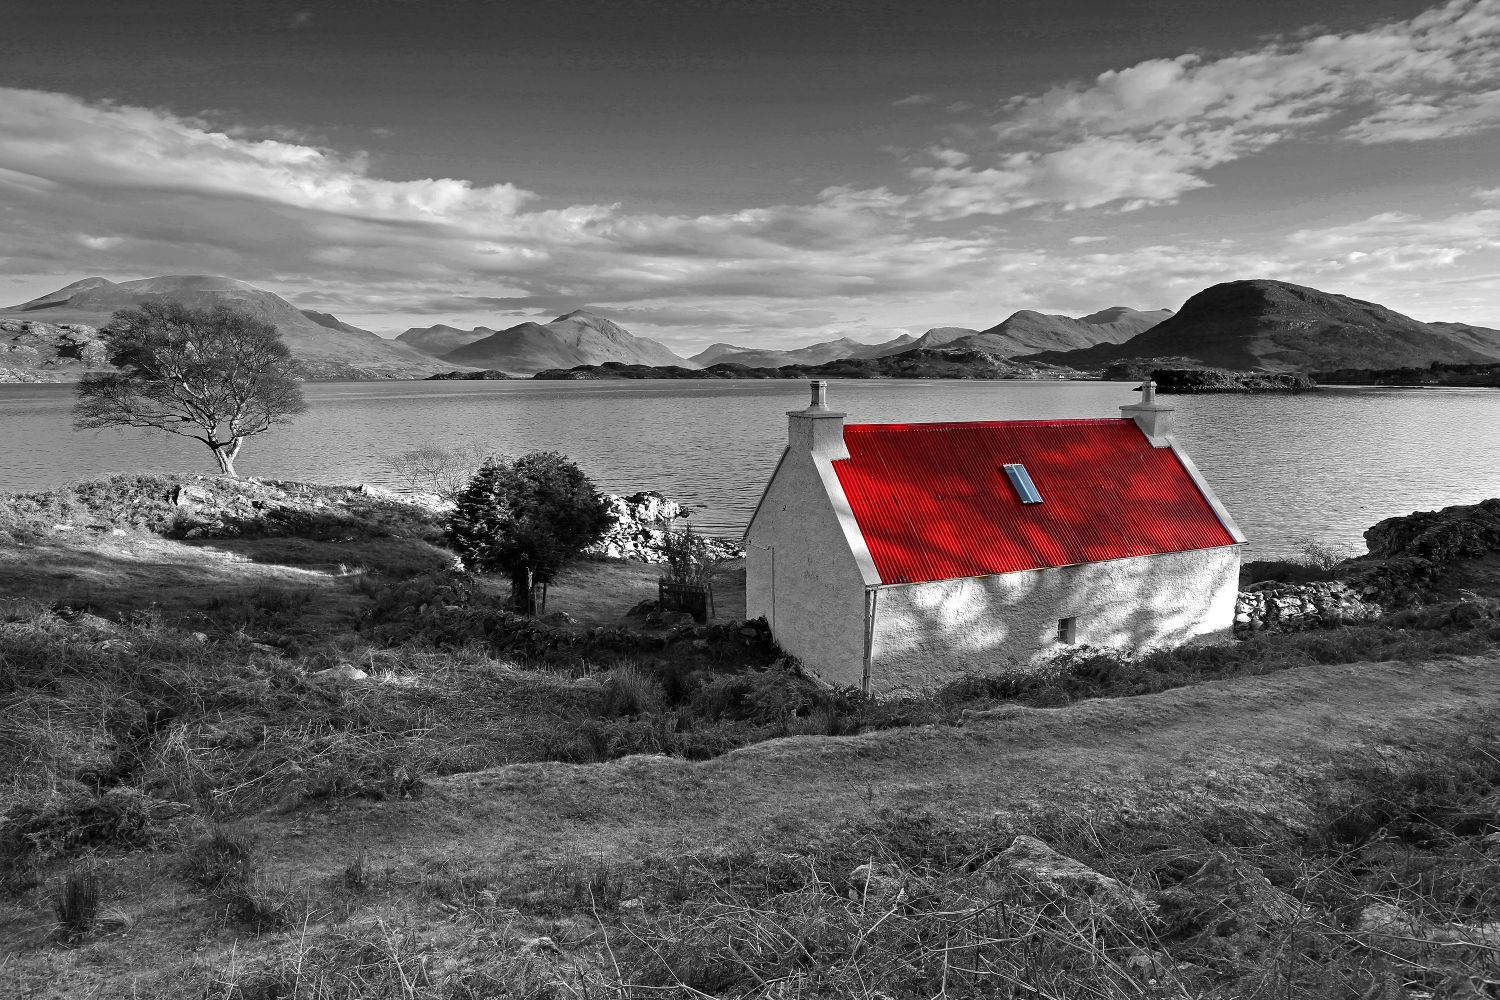 The famous Red Roof Cottage at Loch Shieldaig in Black and White by Martin Lawrence